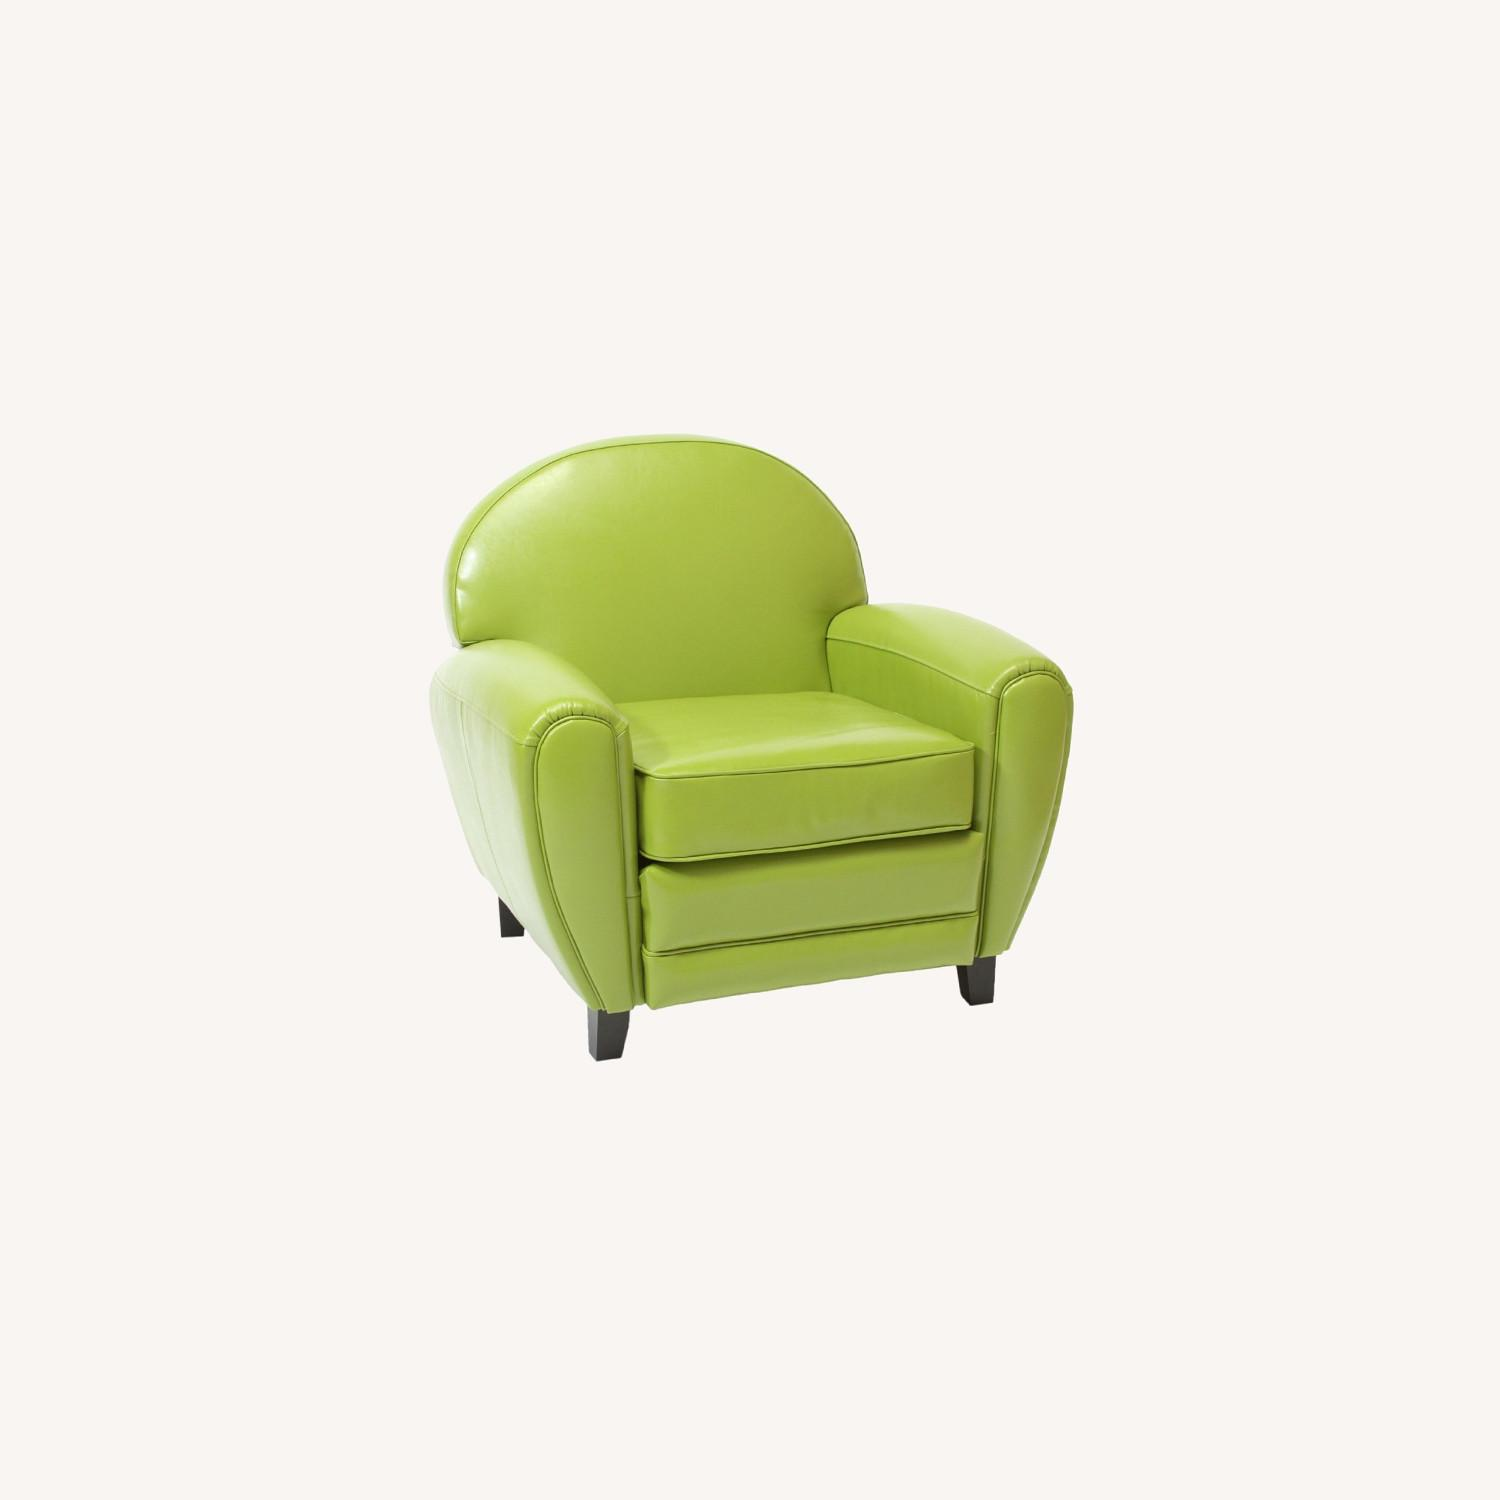 Lime Green Accent Chair - image-0